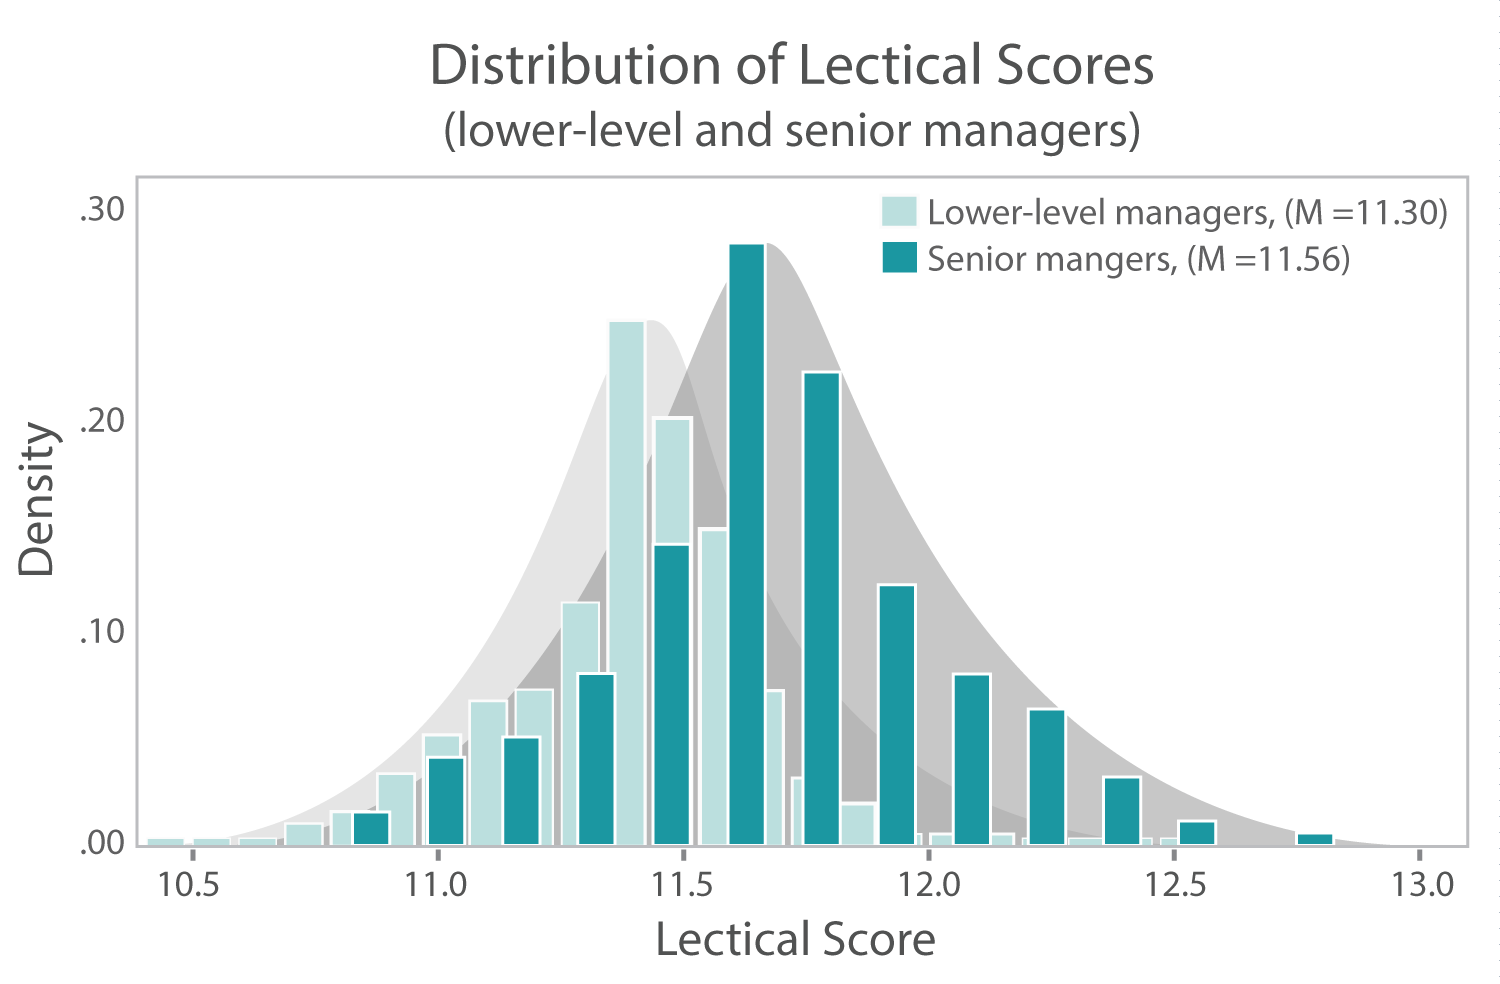 Lectical Score averages for different management levels